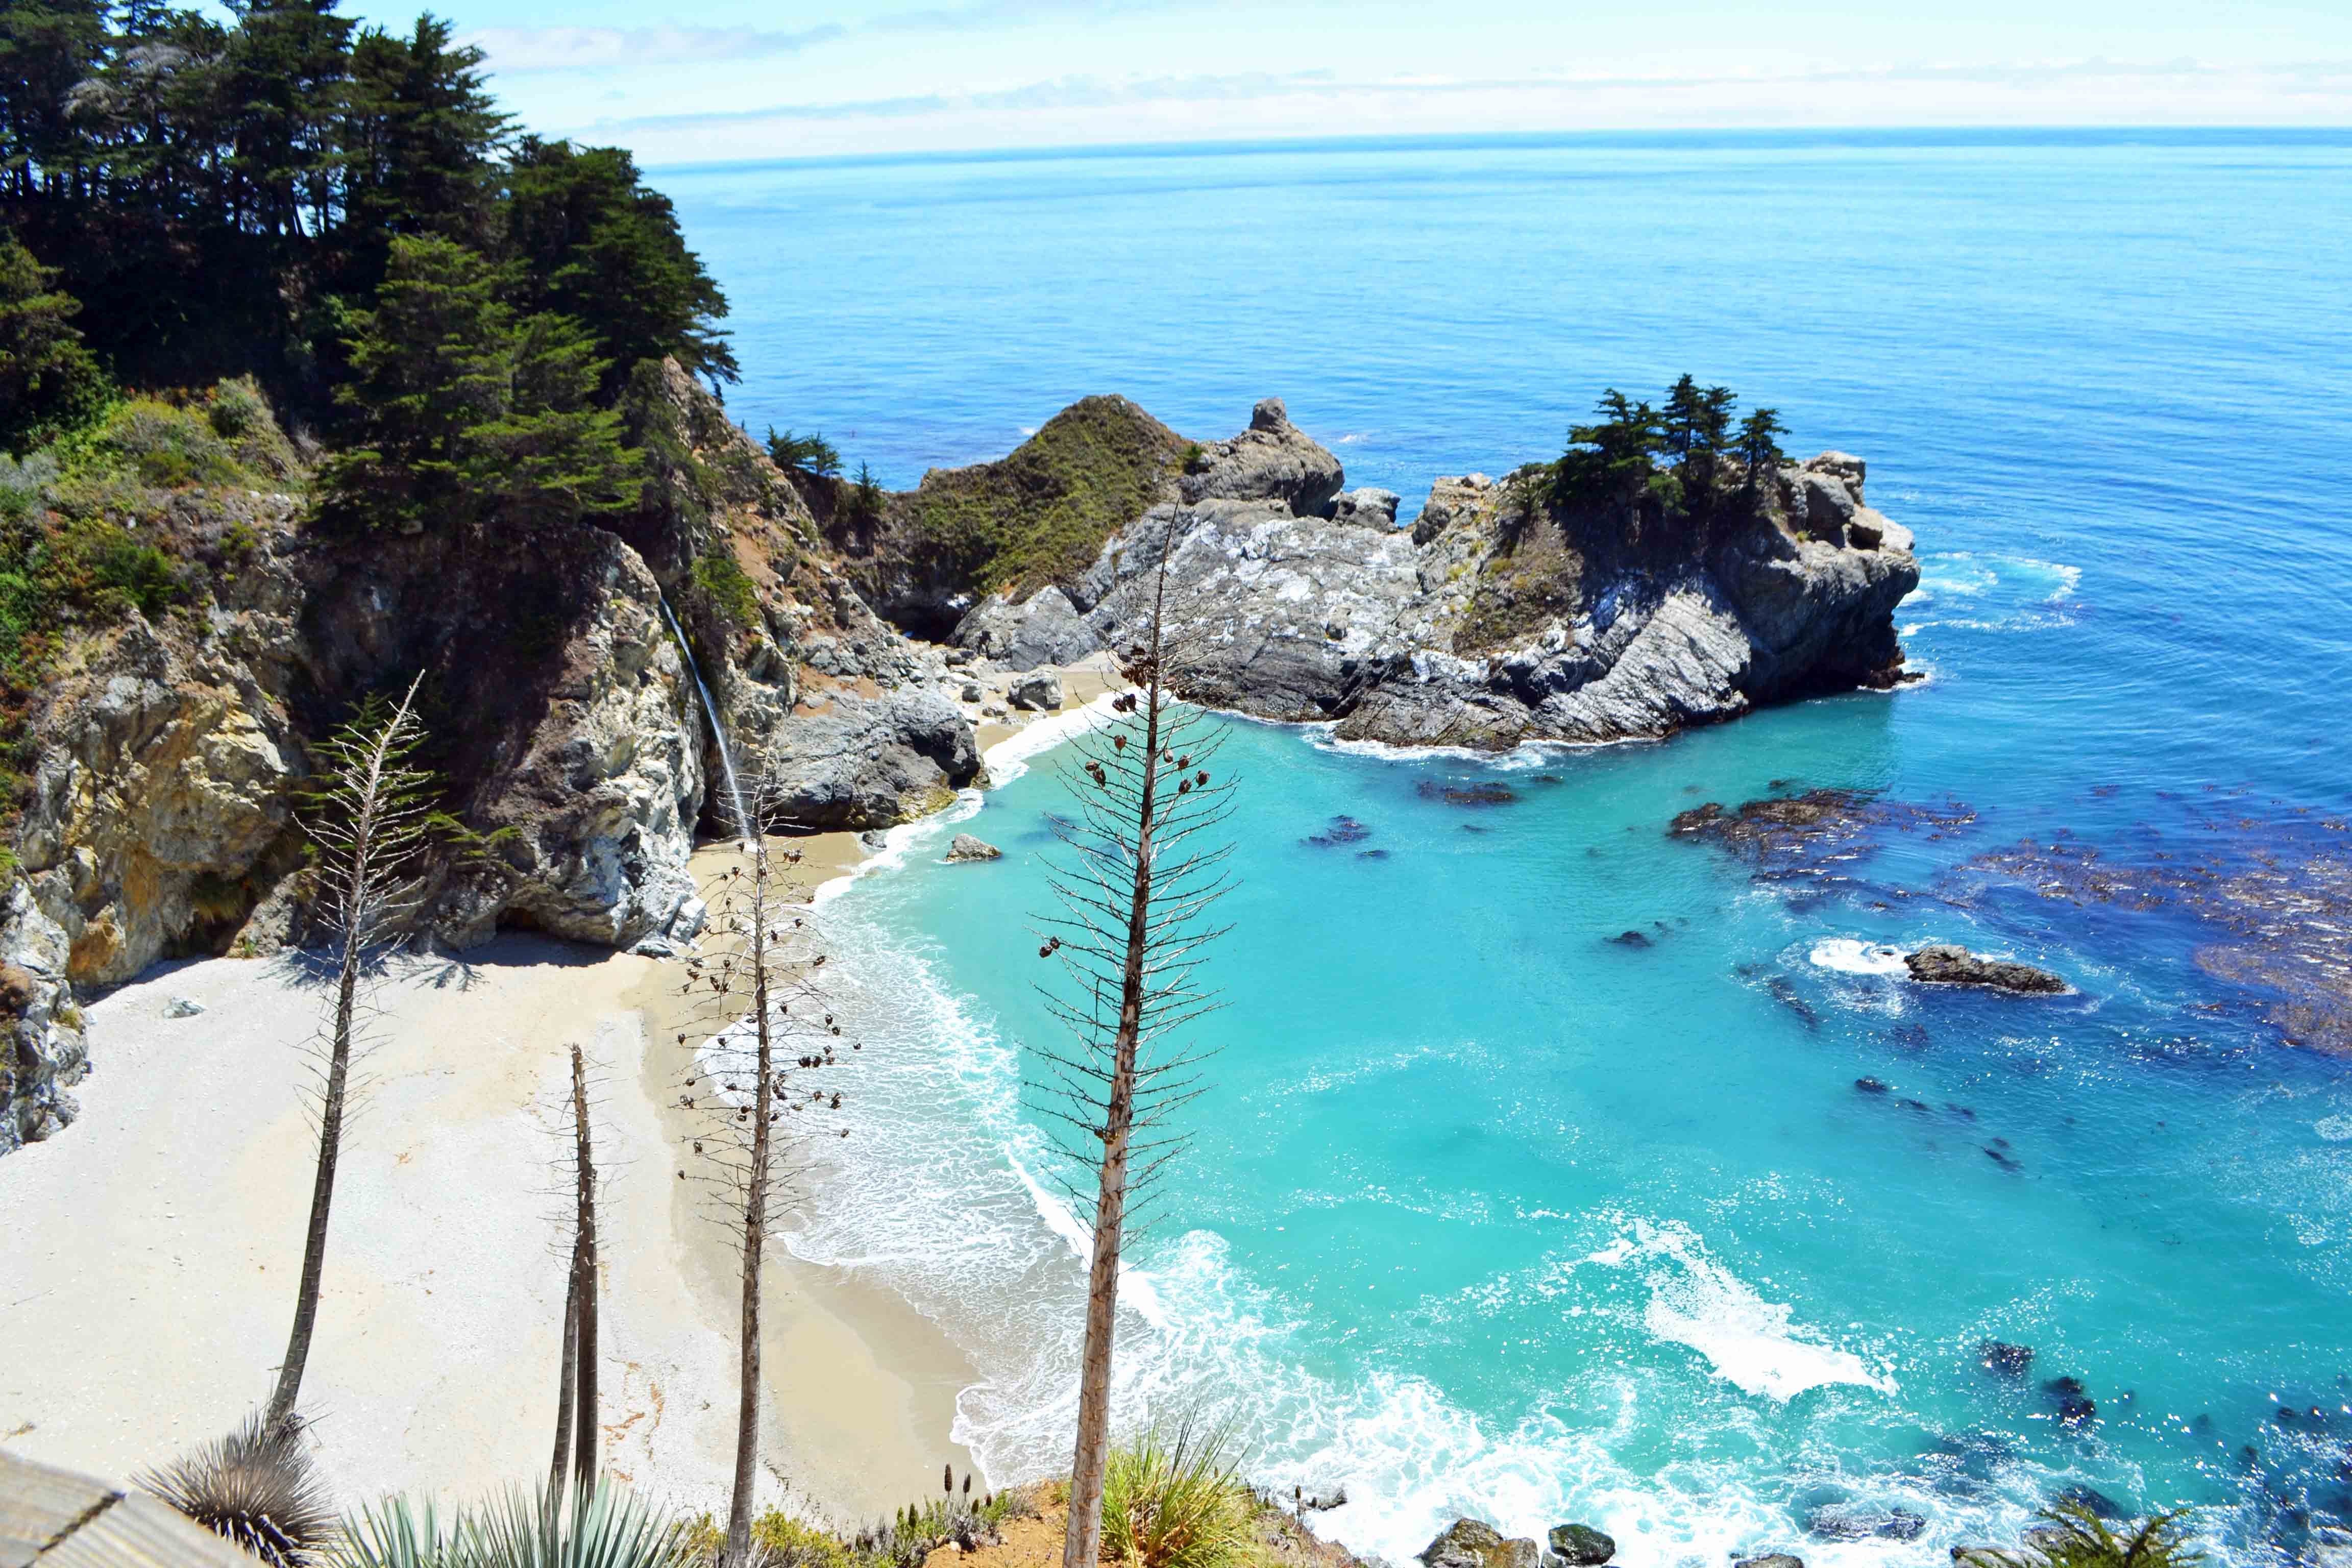 McWay Falls on California Pacific Coast Highway 1 Road Trip